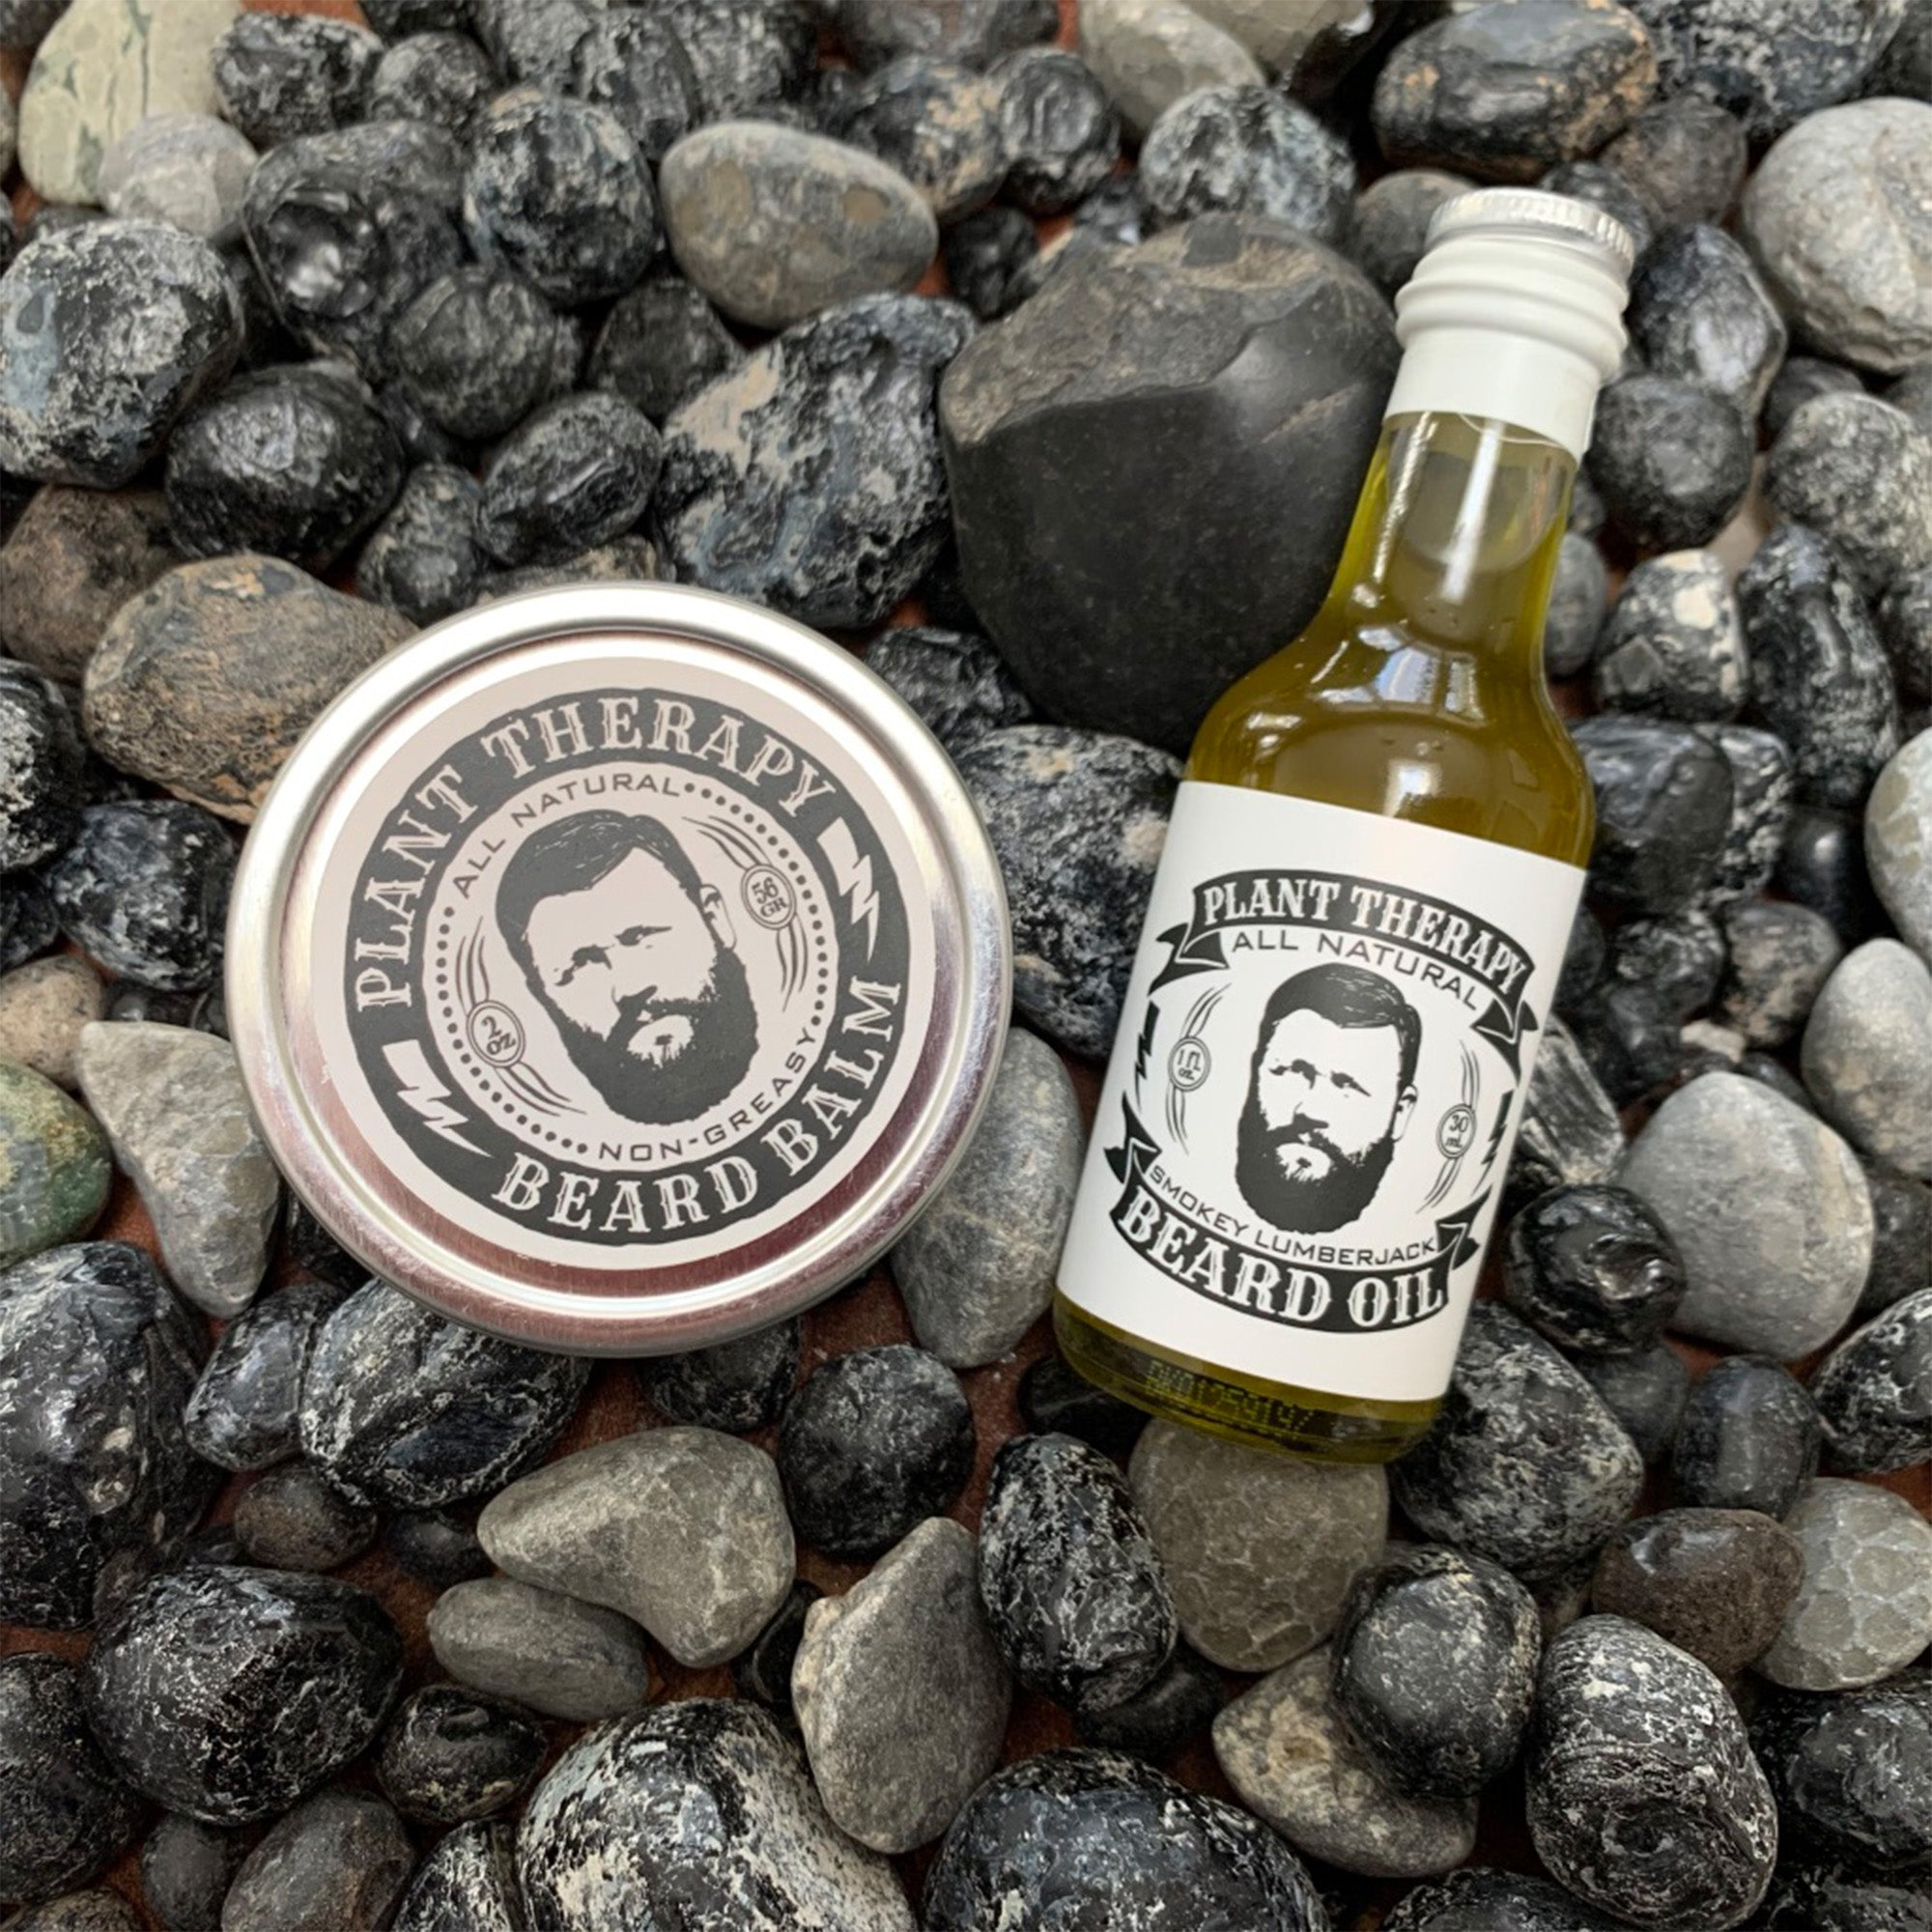 beard balm circular tin, with beard oil bottle, sealed. placed on assorted rocks